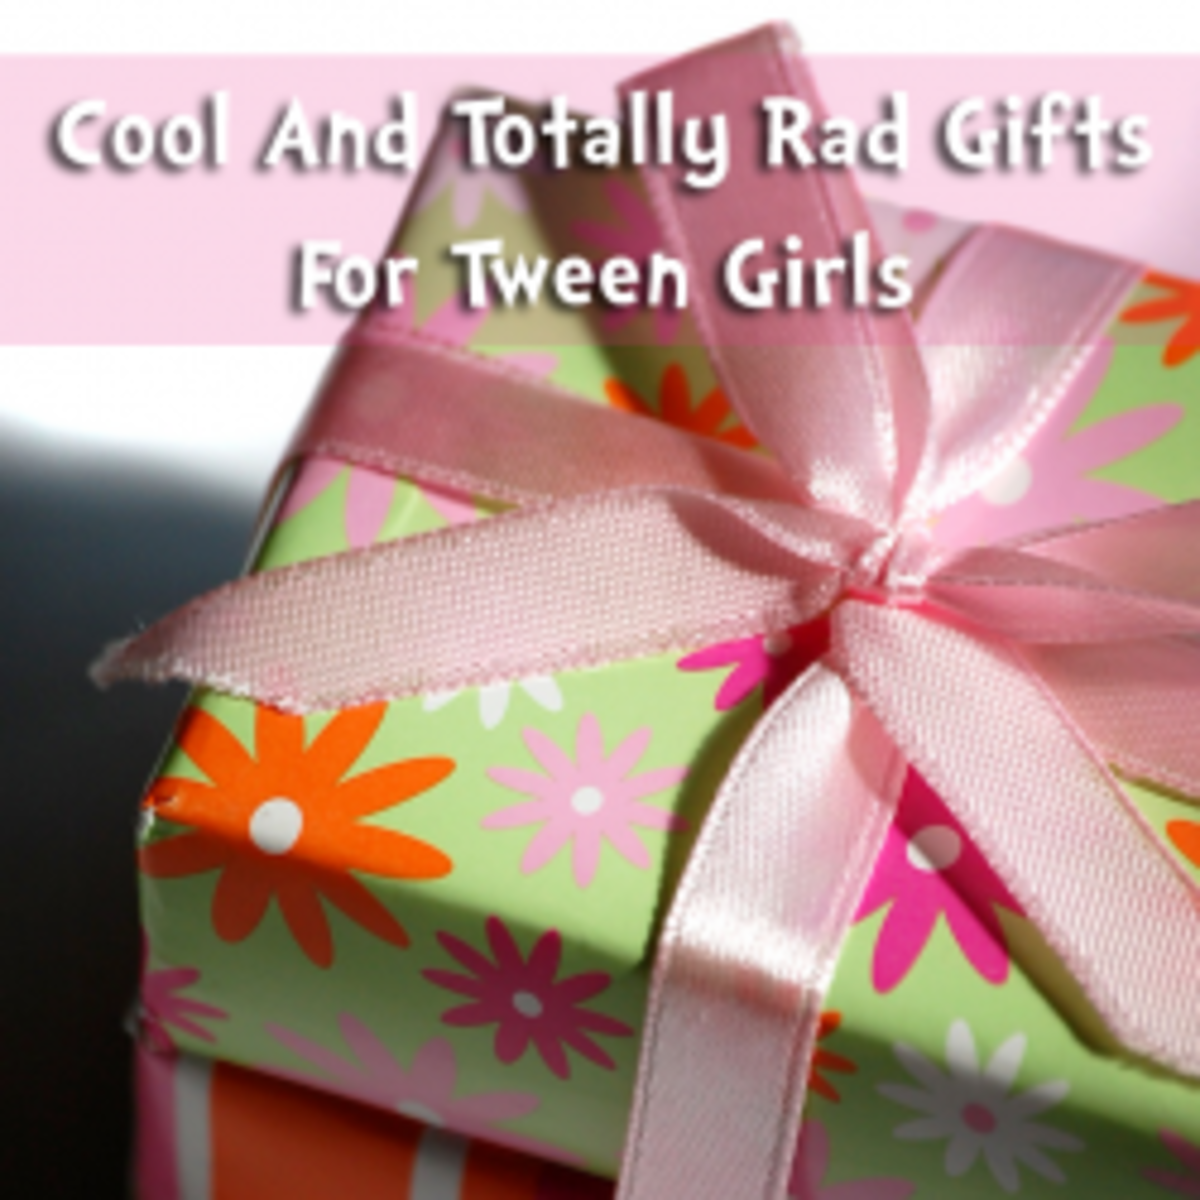 Totally Rad And Cool Gifts For Tween Girls 8 To 12 Years Old